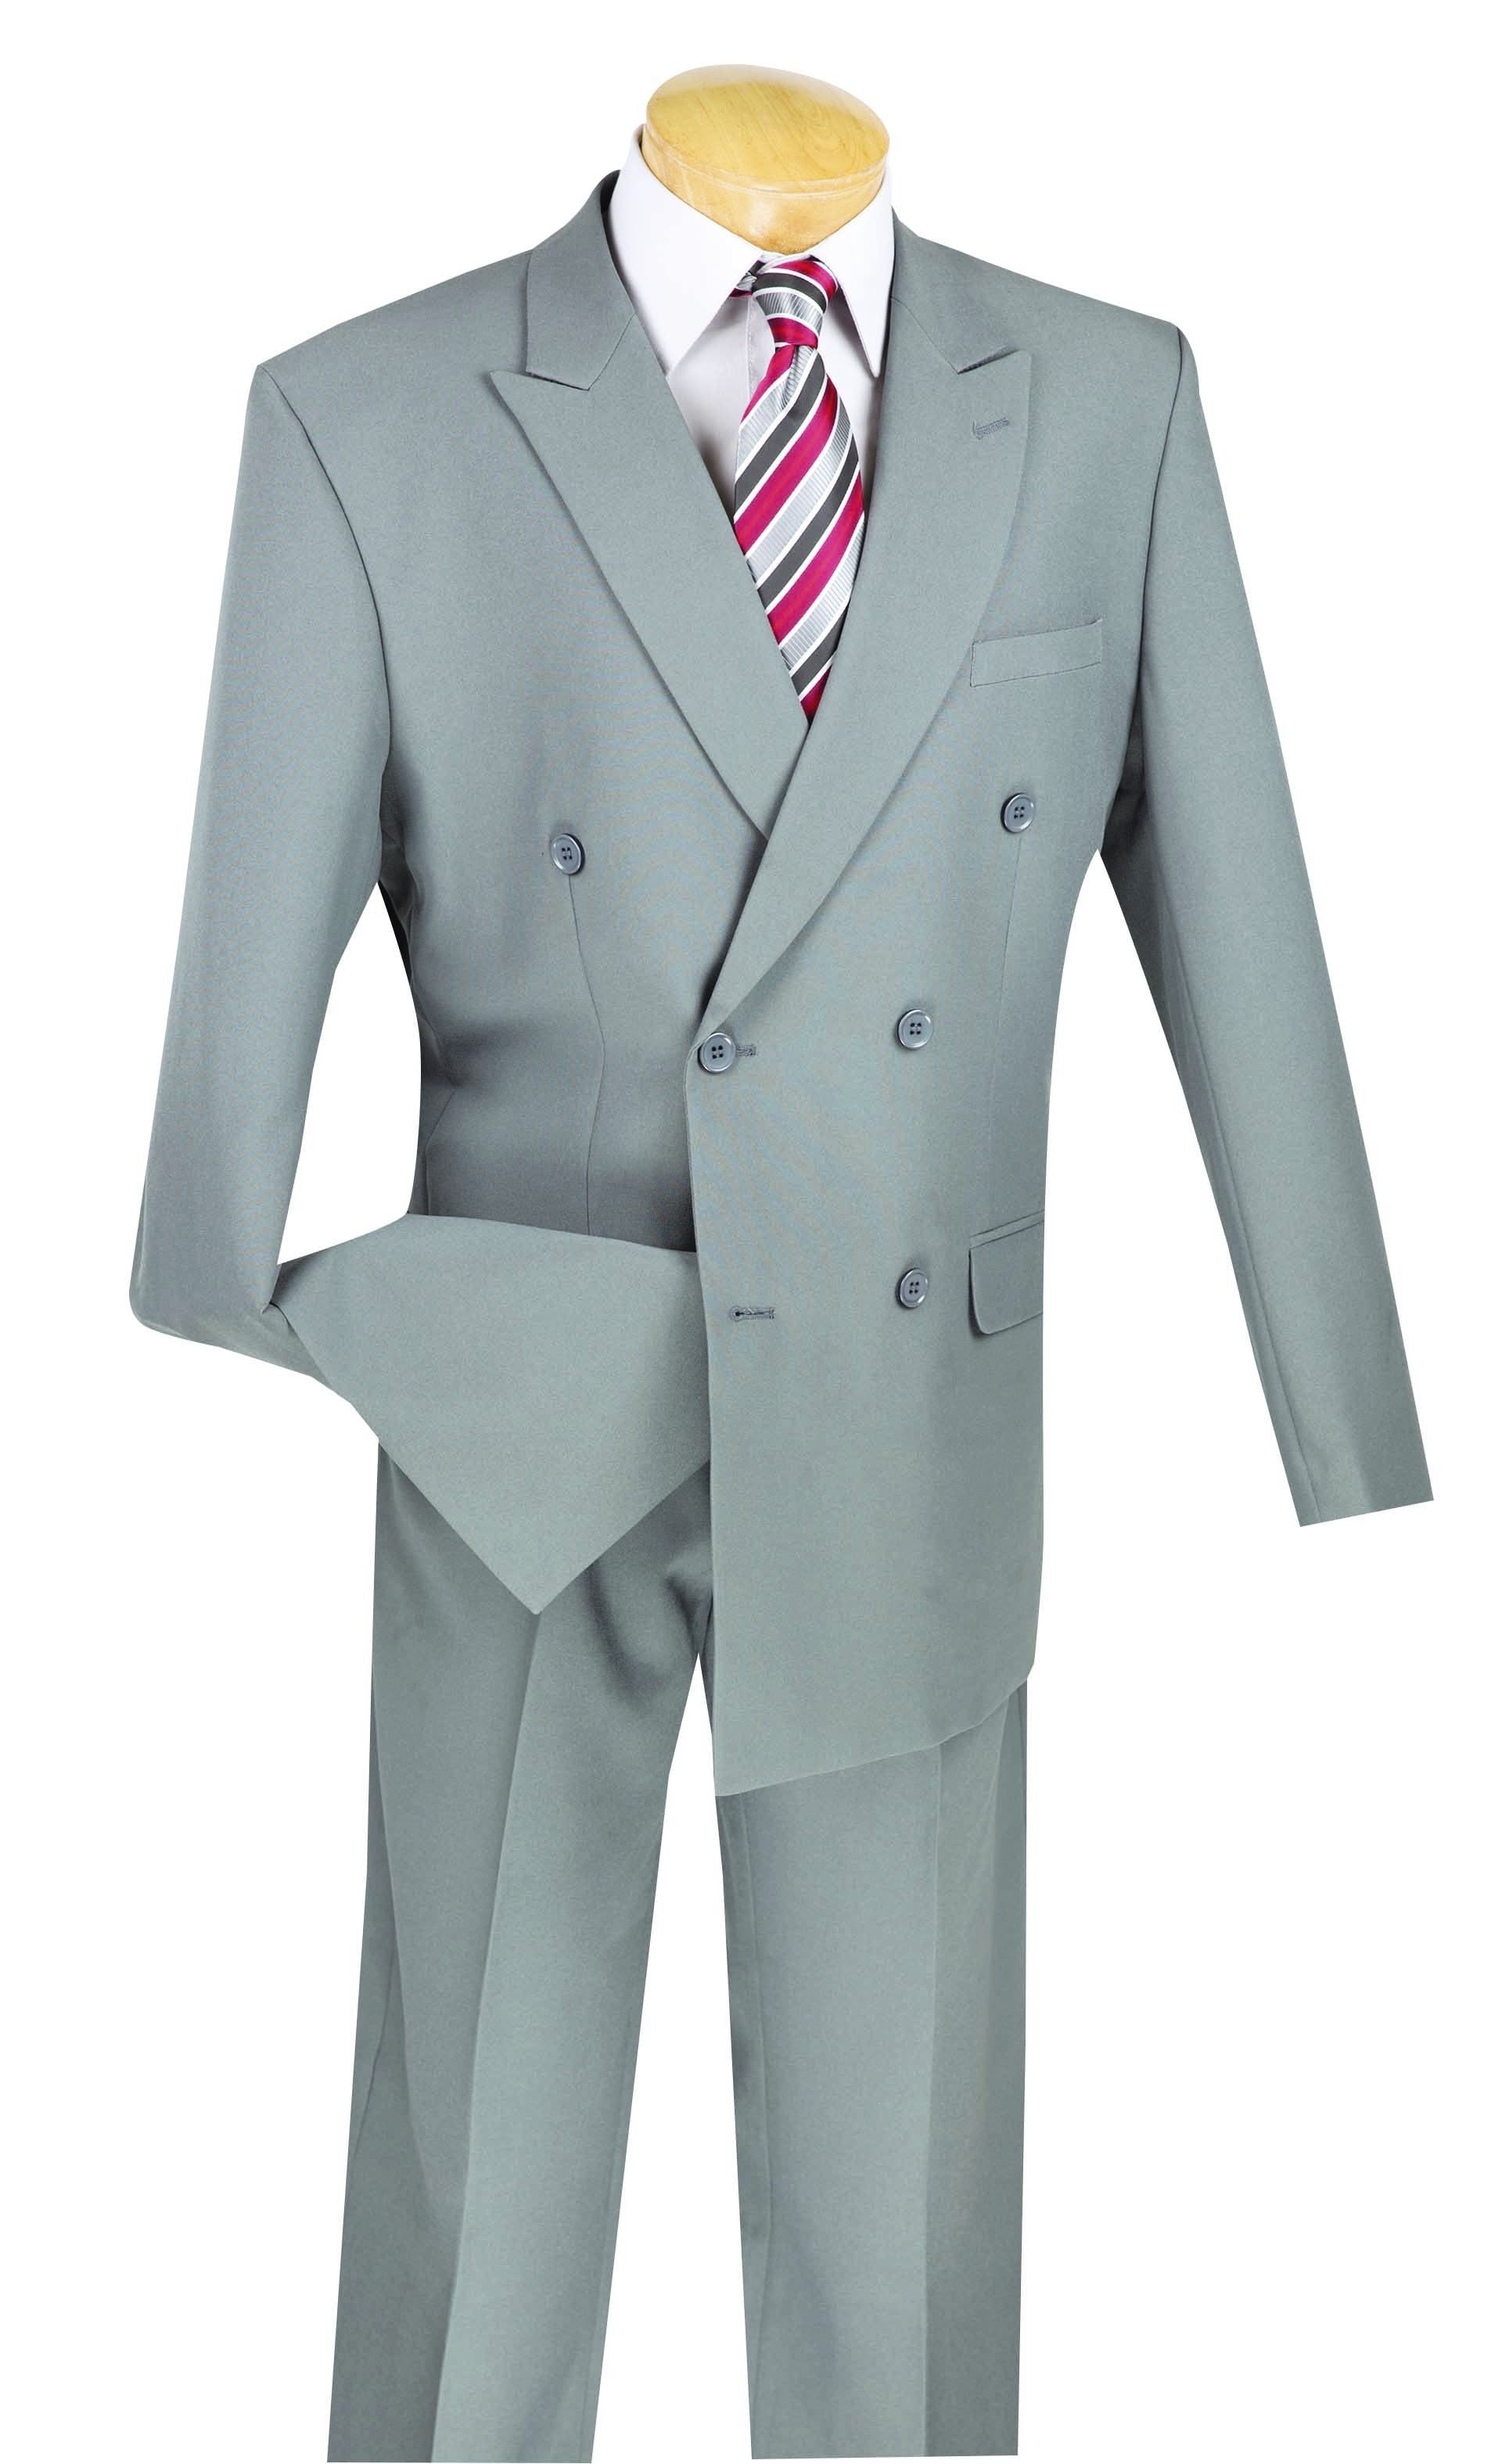 Atlantis Collection - Gray Regular Fit Double Breasted Suit 2 Piece ...